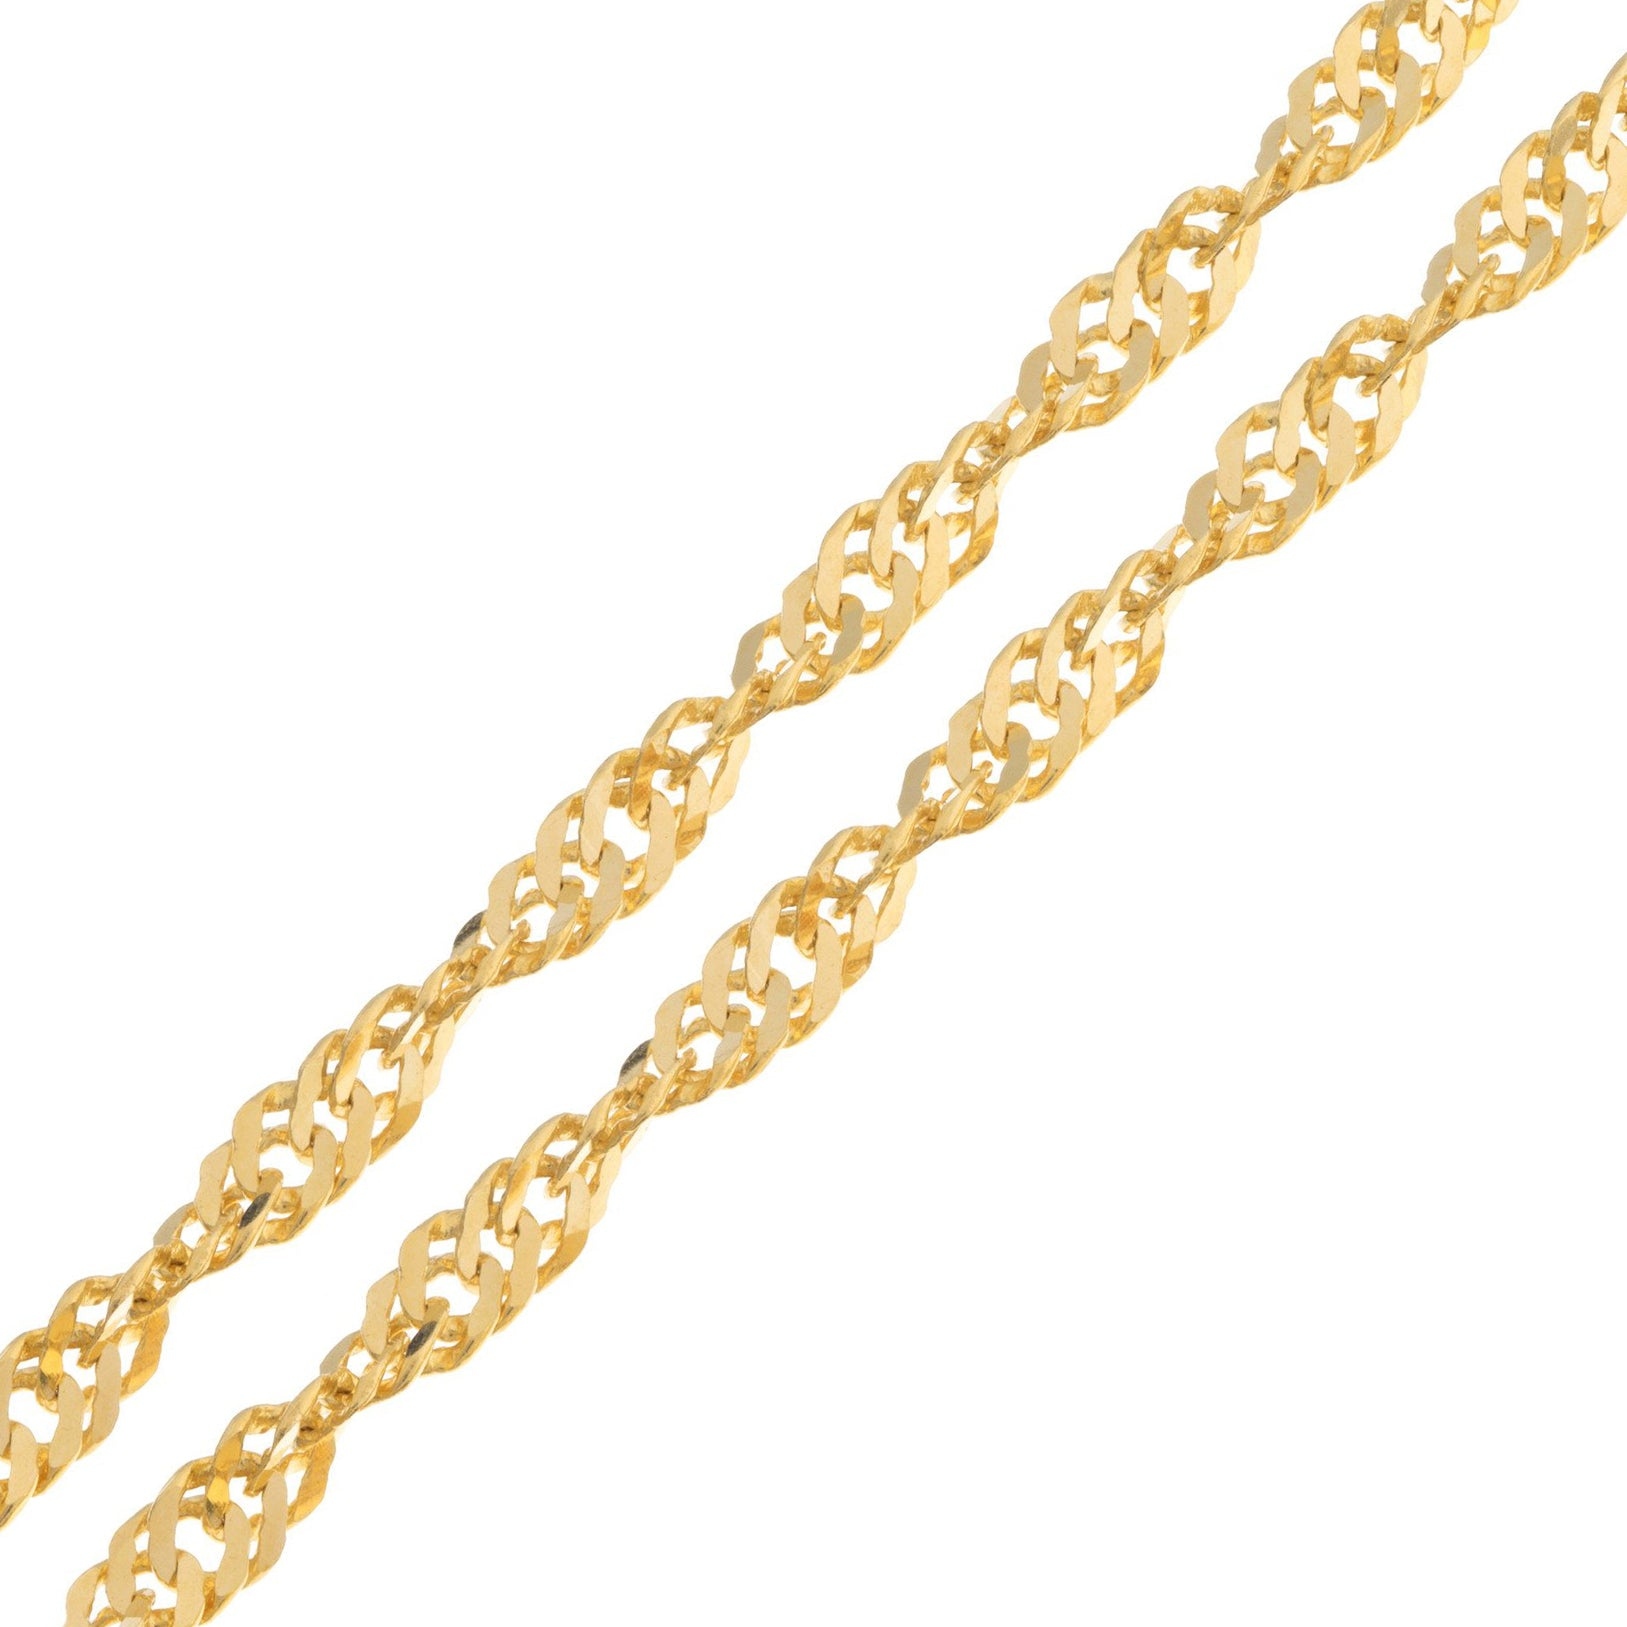 "22ct Yellow Gold 18"" or 24"" Ripple Chain, Minar Jewellers - 1"